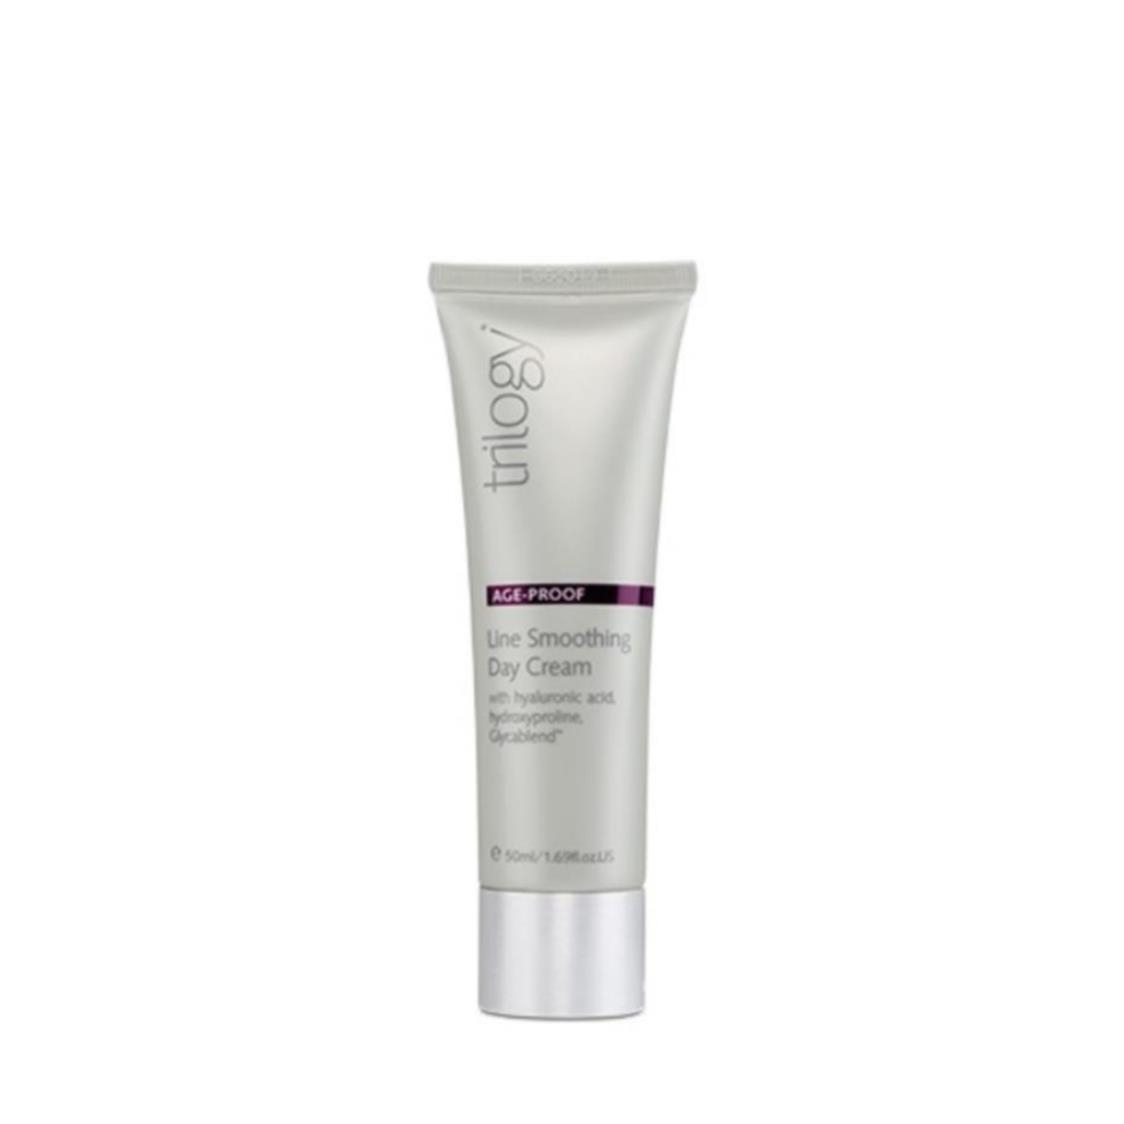 Age-Proof Line Smoothing Day Cream 50ml